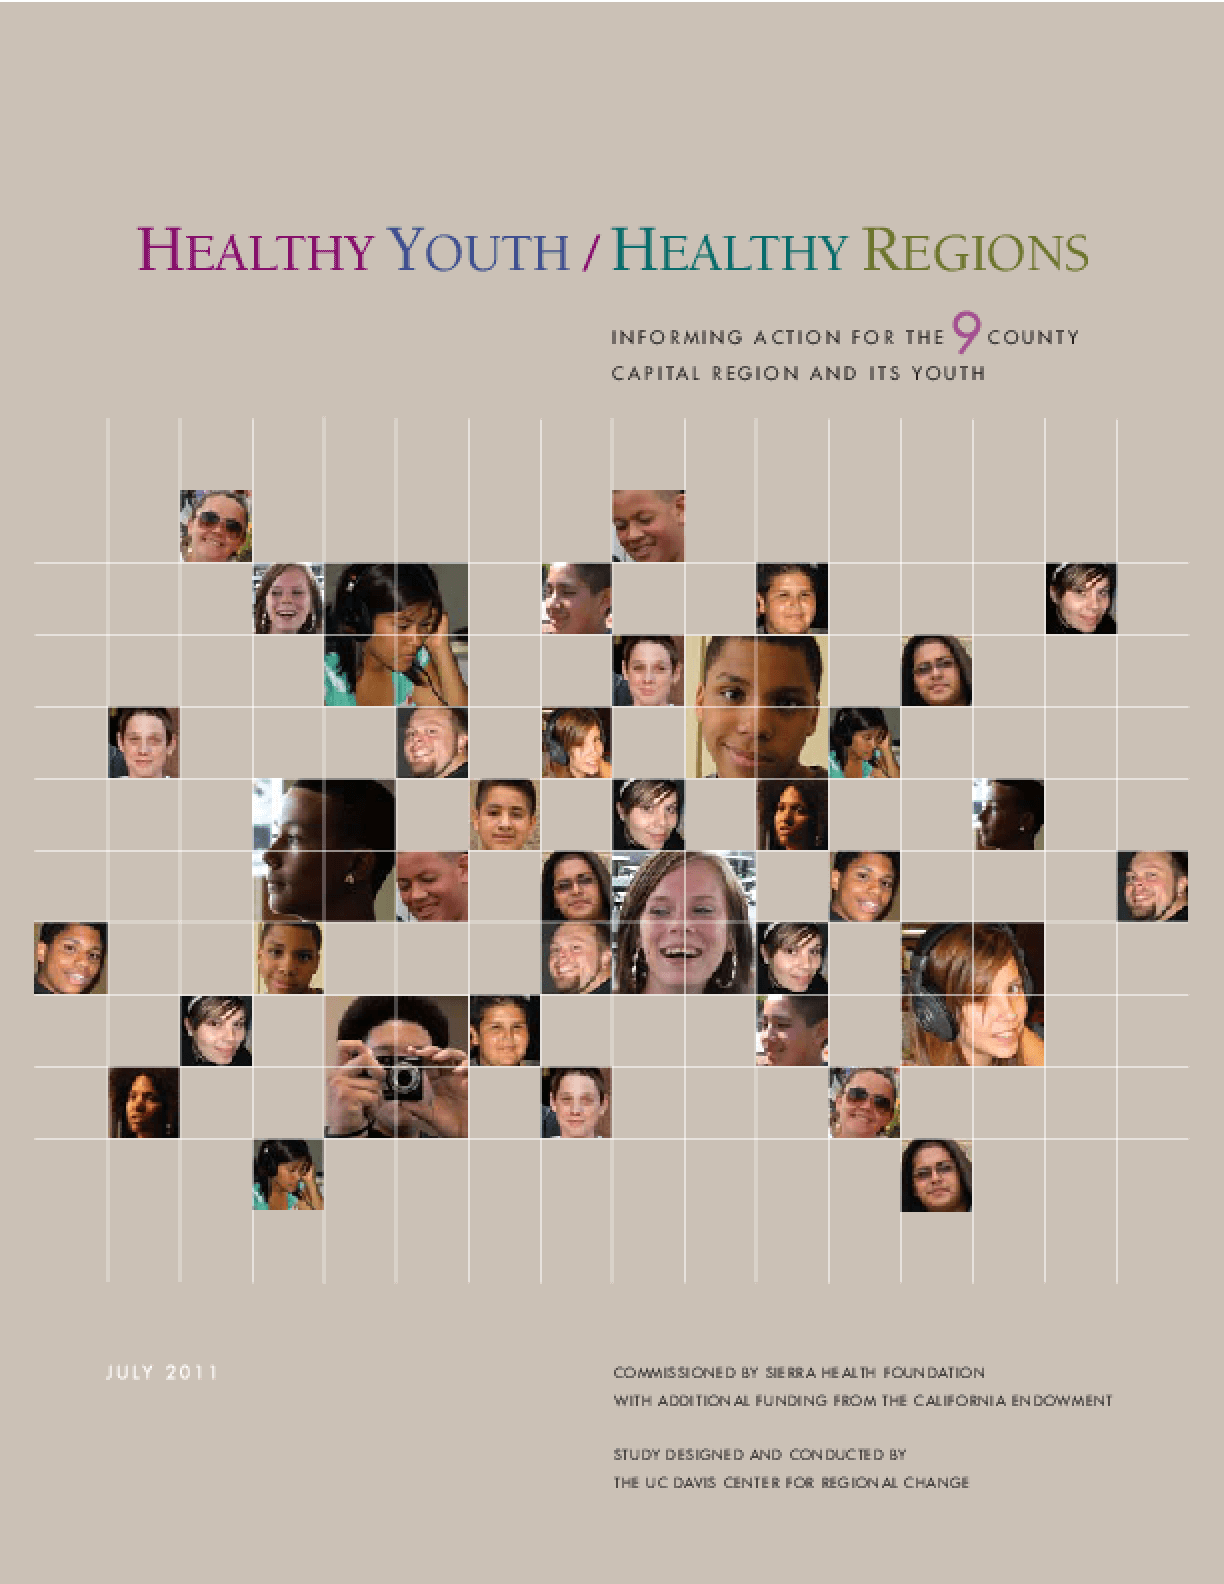 Healthy Youth/Healthy Regions: Informing Action for the 9 County Capital Region and Its Youth